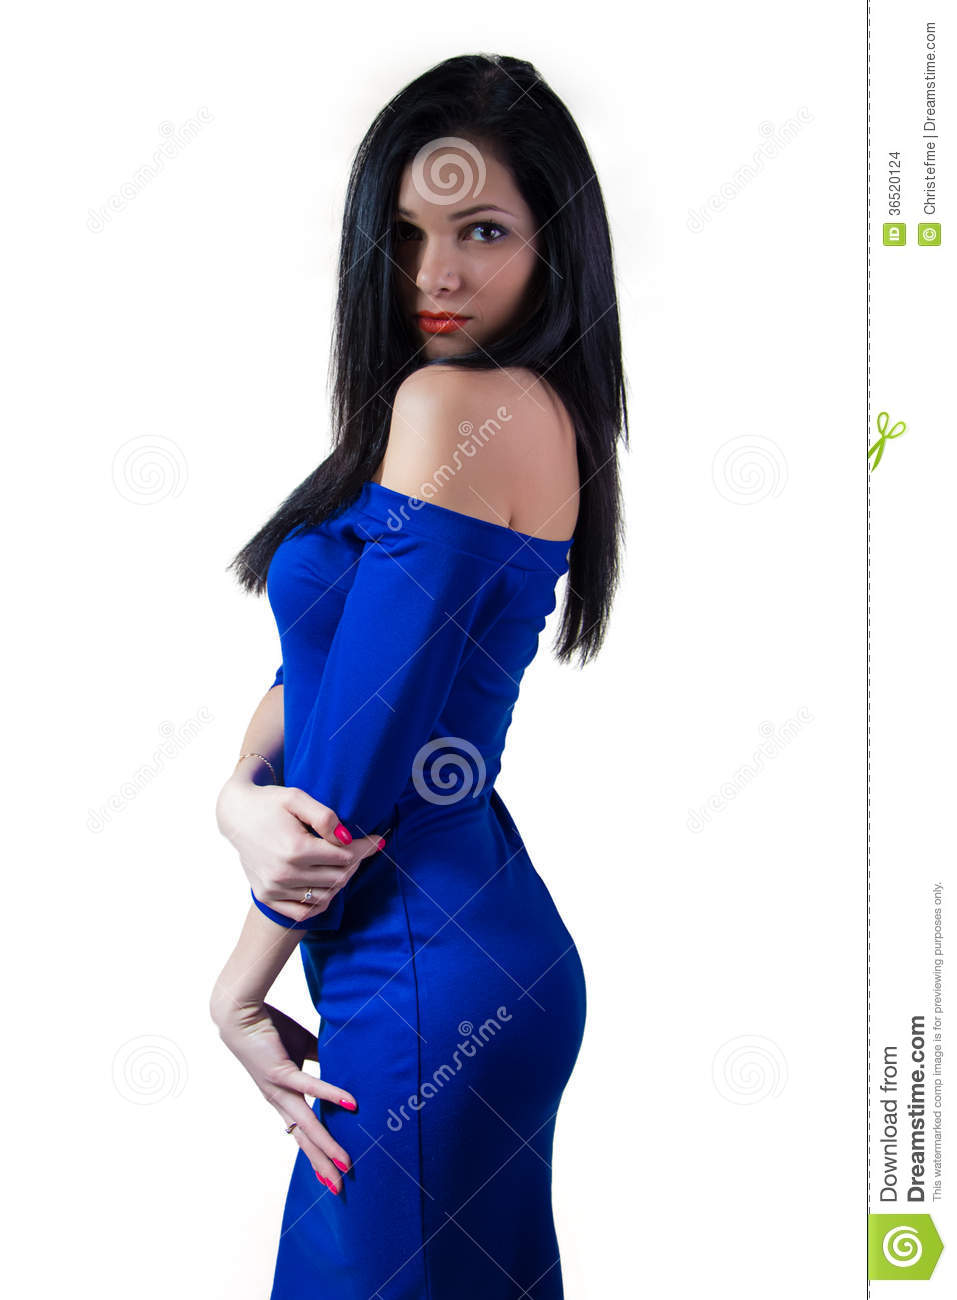 Girl In Blue Dress Stock Images - Image: 36520124